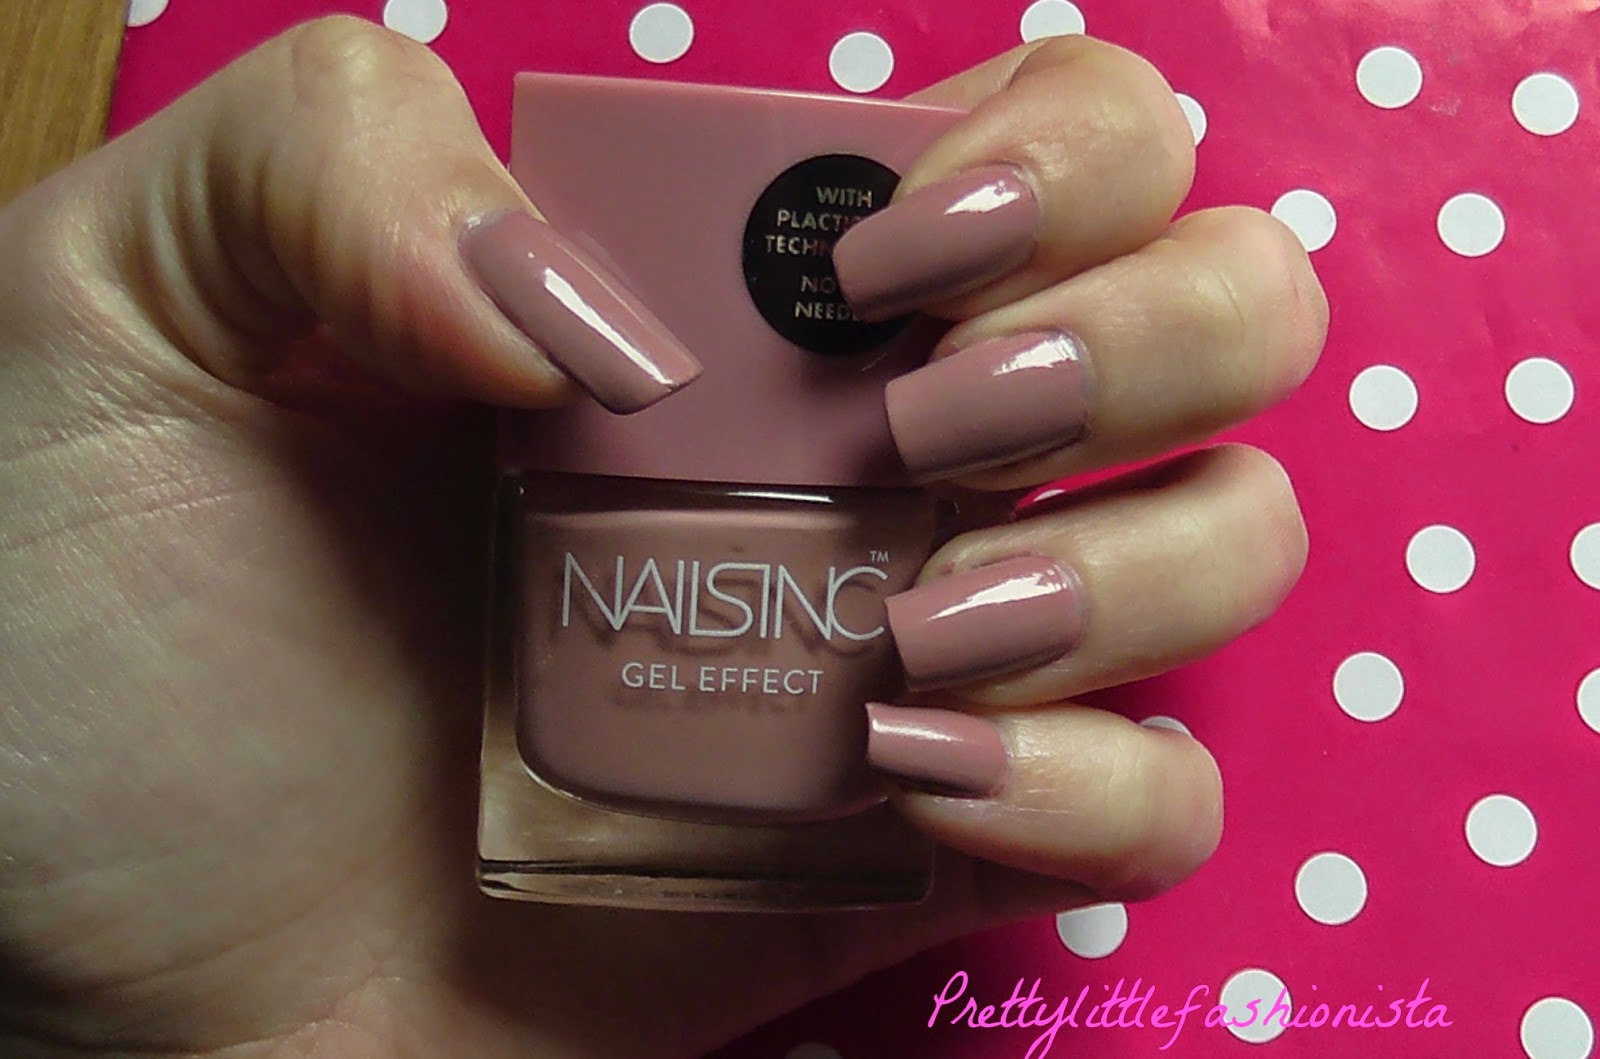 NOTD: Nails Inc Uptown